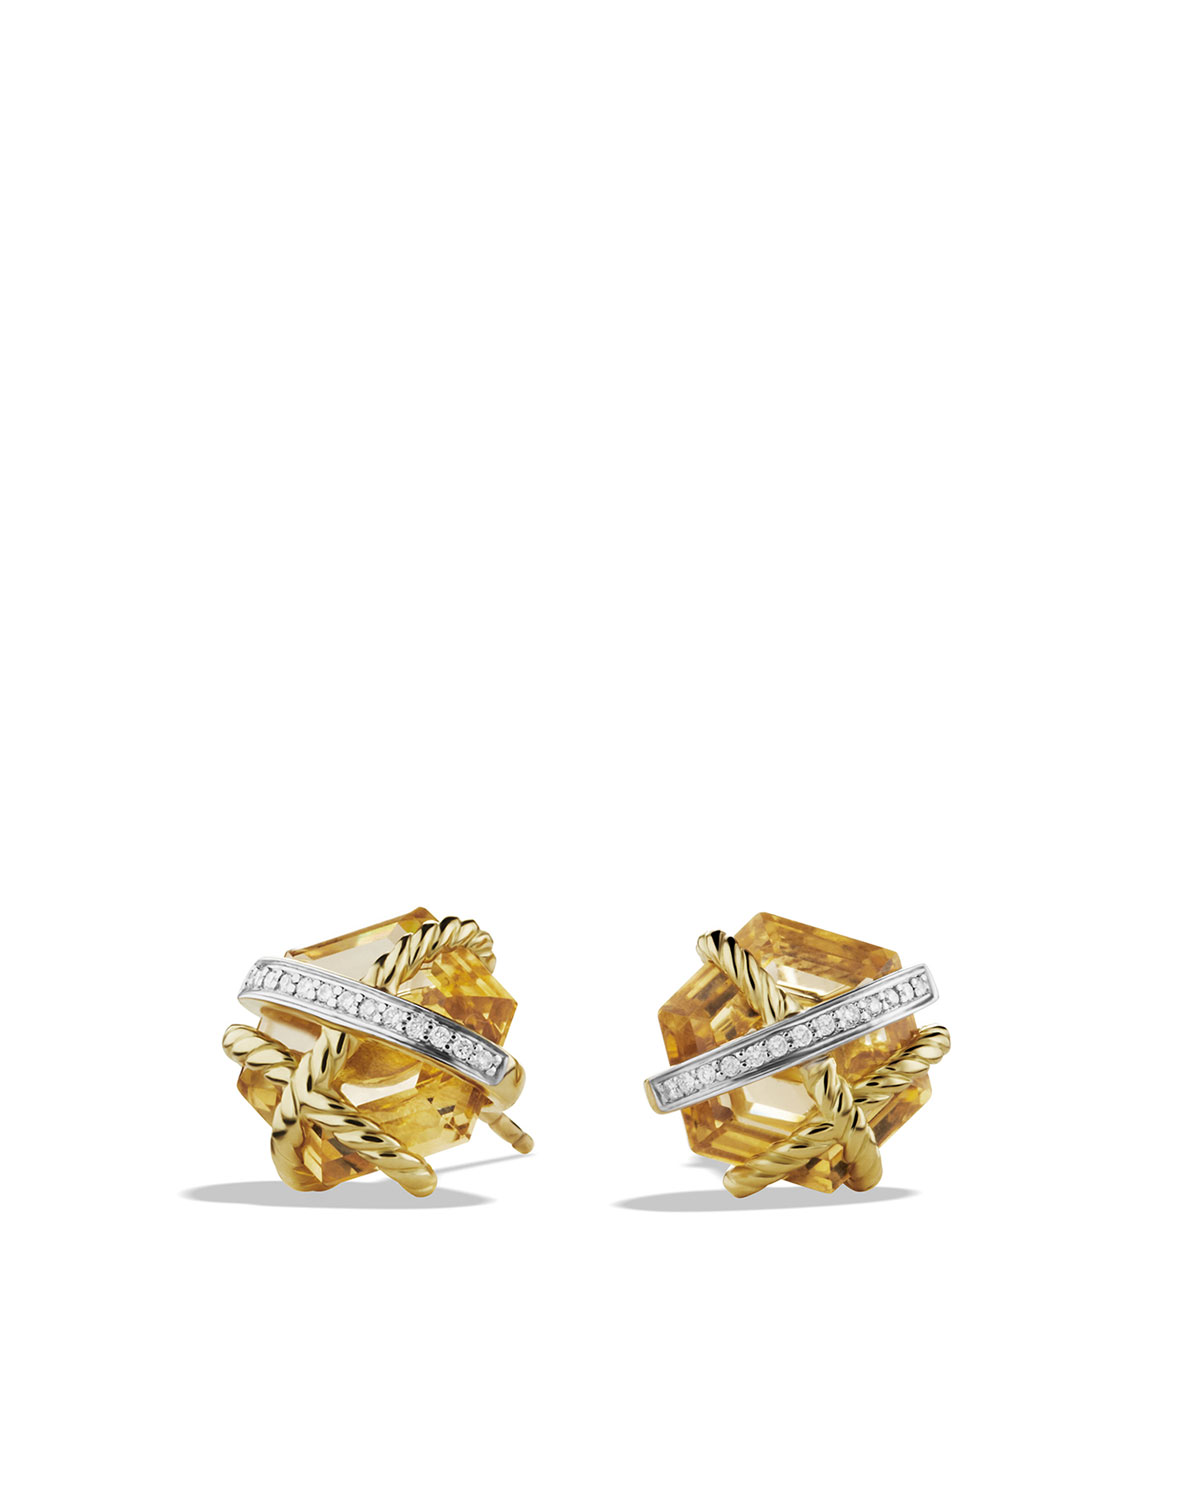 Cable Wrap Earrings, Champagne Citrine, 10mm